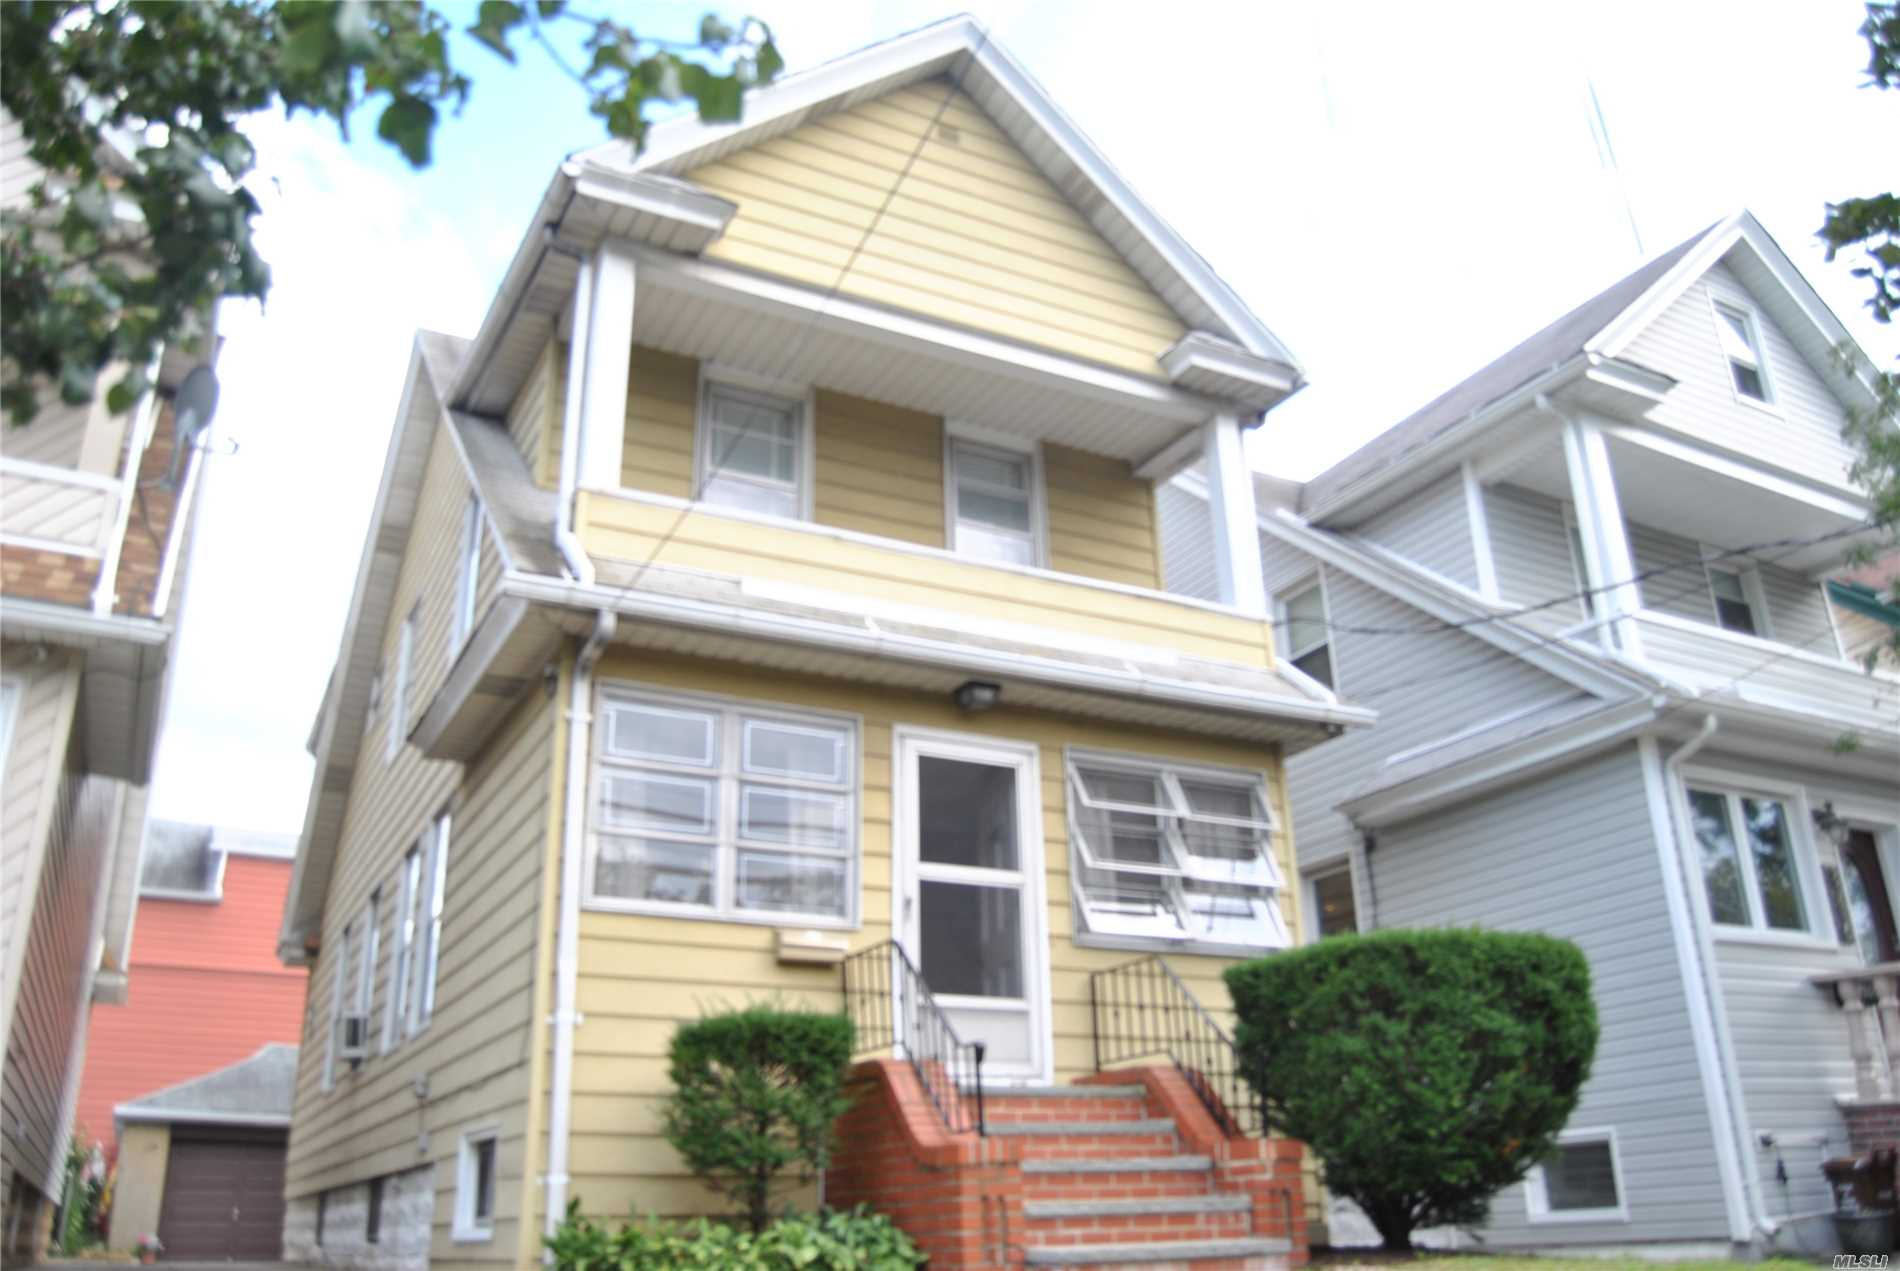 Beautiful Liberty Heights Area Of Ozone Park, Walk To A Train, 10 Min To Jfk, And Every Conceivable Convenience. Great Potential, Spacious And Bright Home. Nice Large Backyard. Great School. 2 Car Garage And A Wide Enough Pvt. Parquet Hardwood Flooring On Carpet. Two Car Garage And Private Driveway. Only Bonafide Buyers Need Apply. Say Hello To A Good Buy! House Sold As Is!!